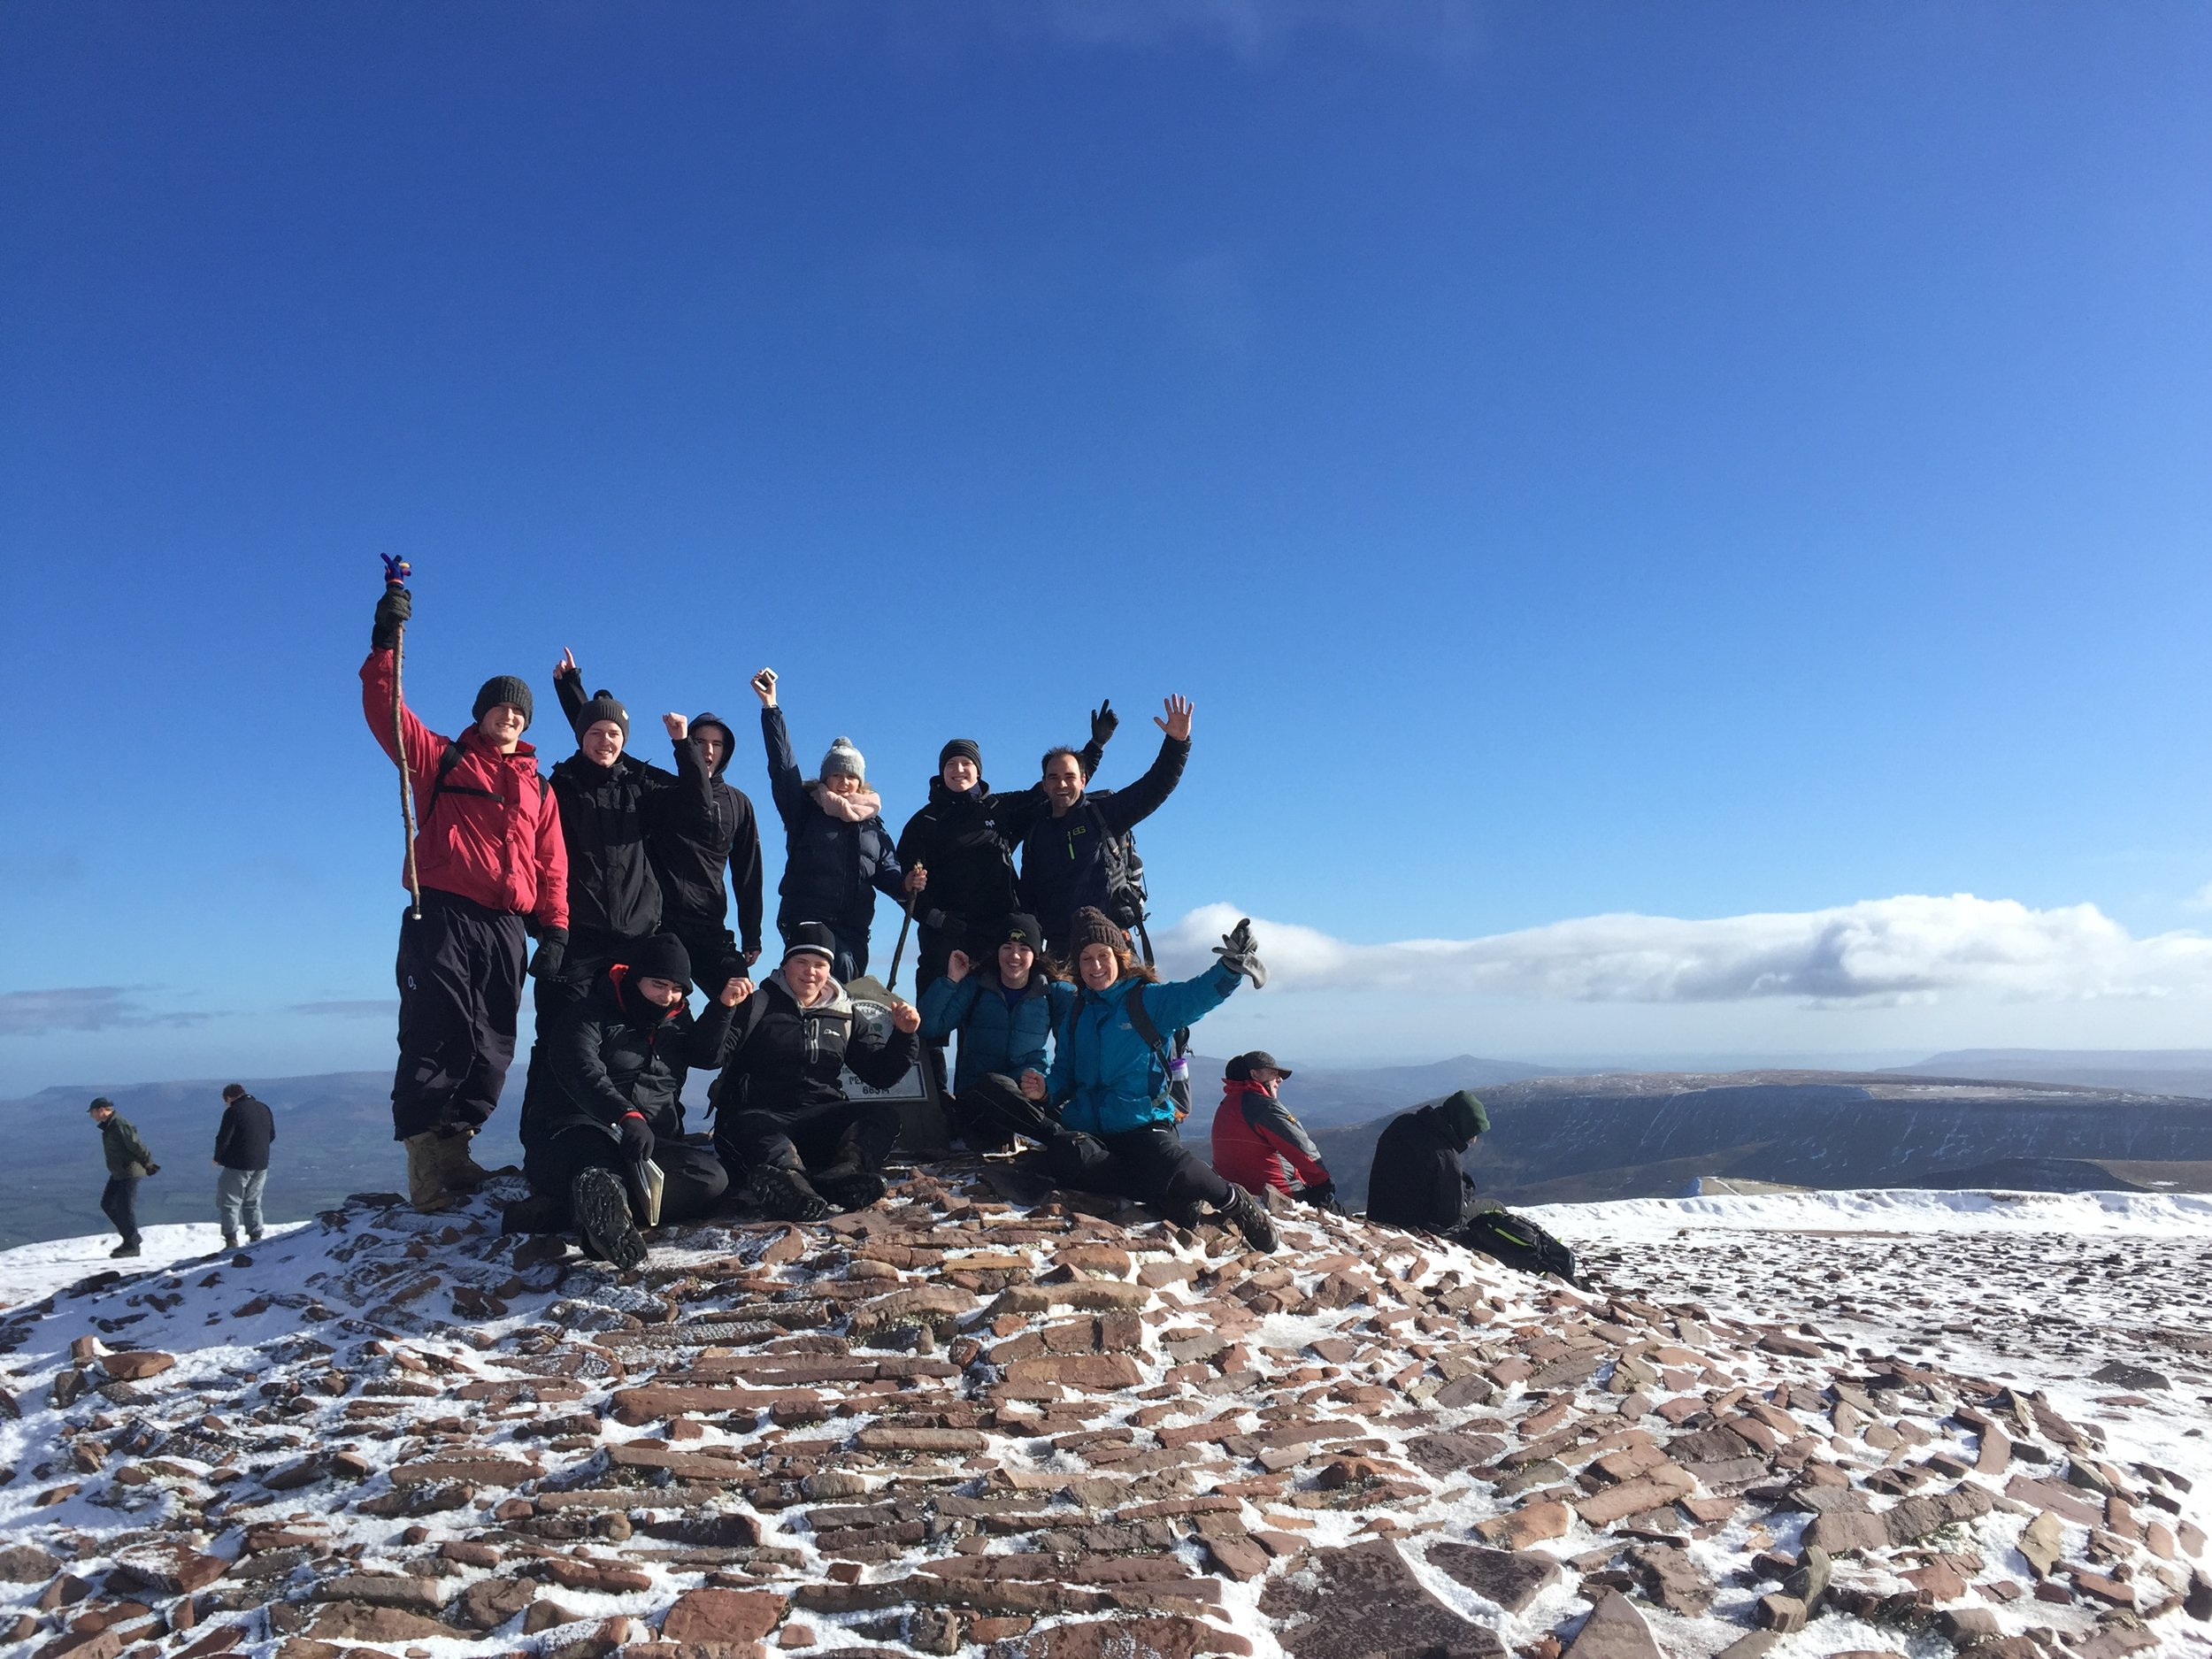 Successful summit for this group of outdoor students.